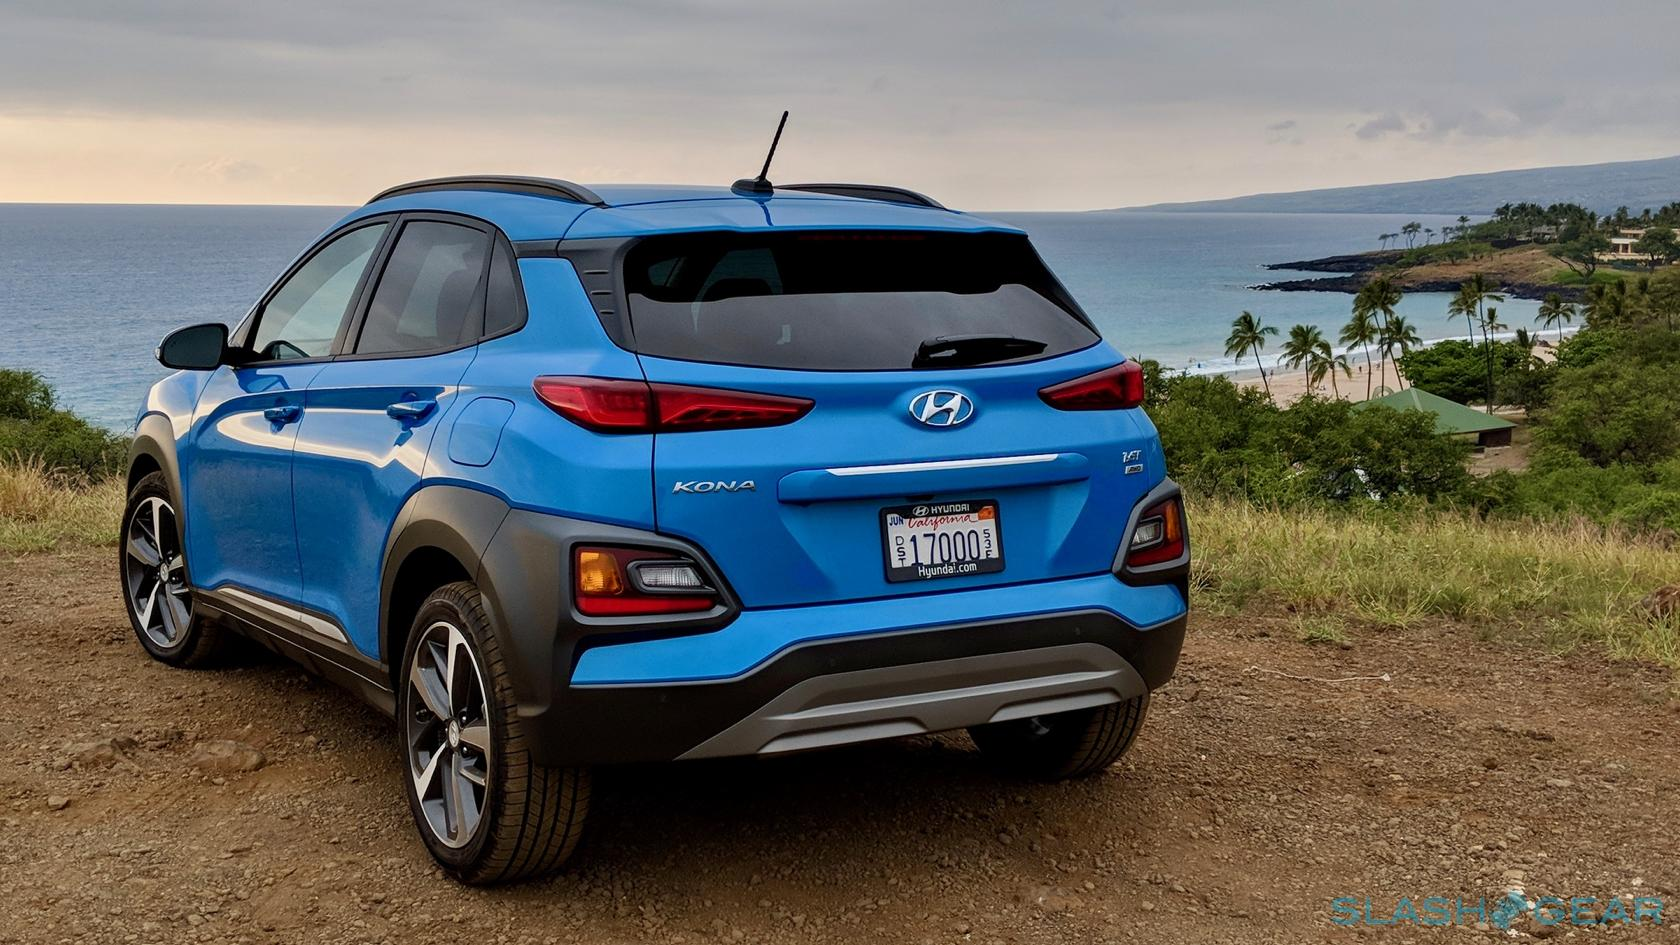 2018 hyundai kona review a subcompact crossover suv with an attitude slashgear. Black Bedroom Furniture Sets. Home Design Ideas